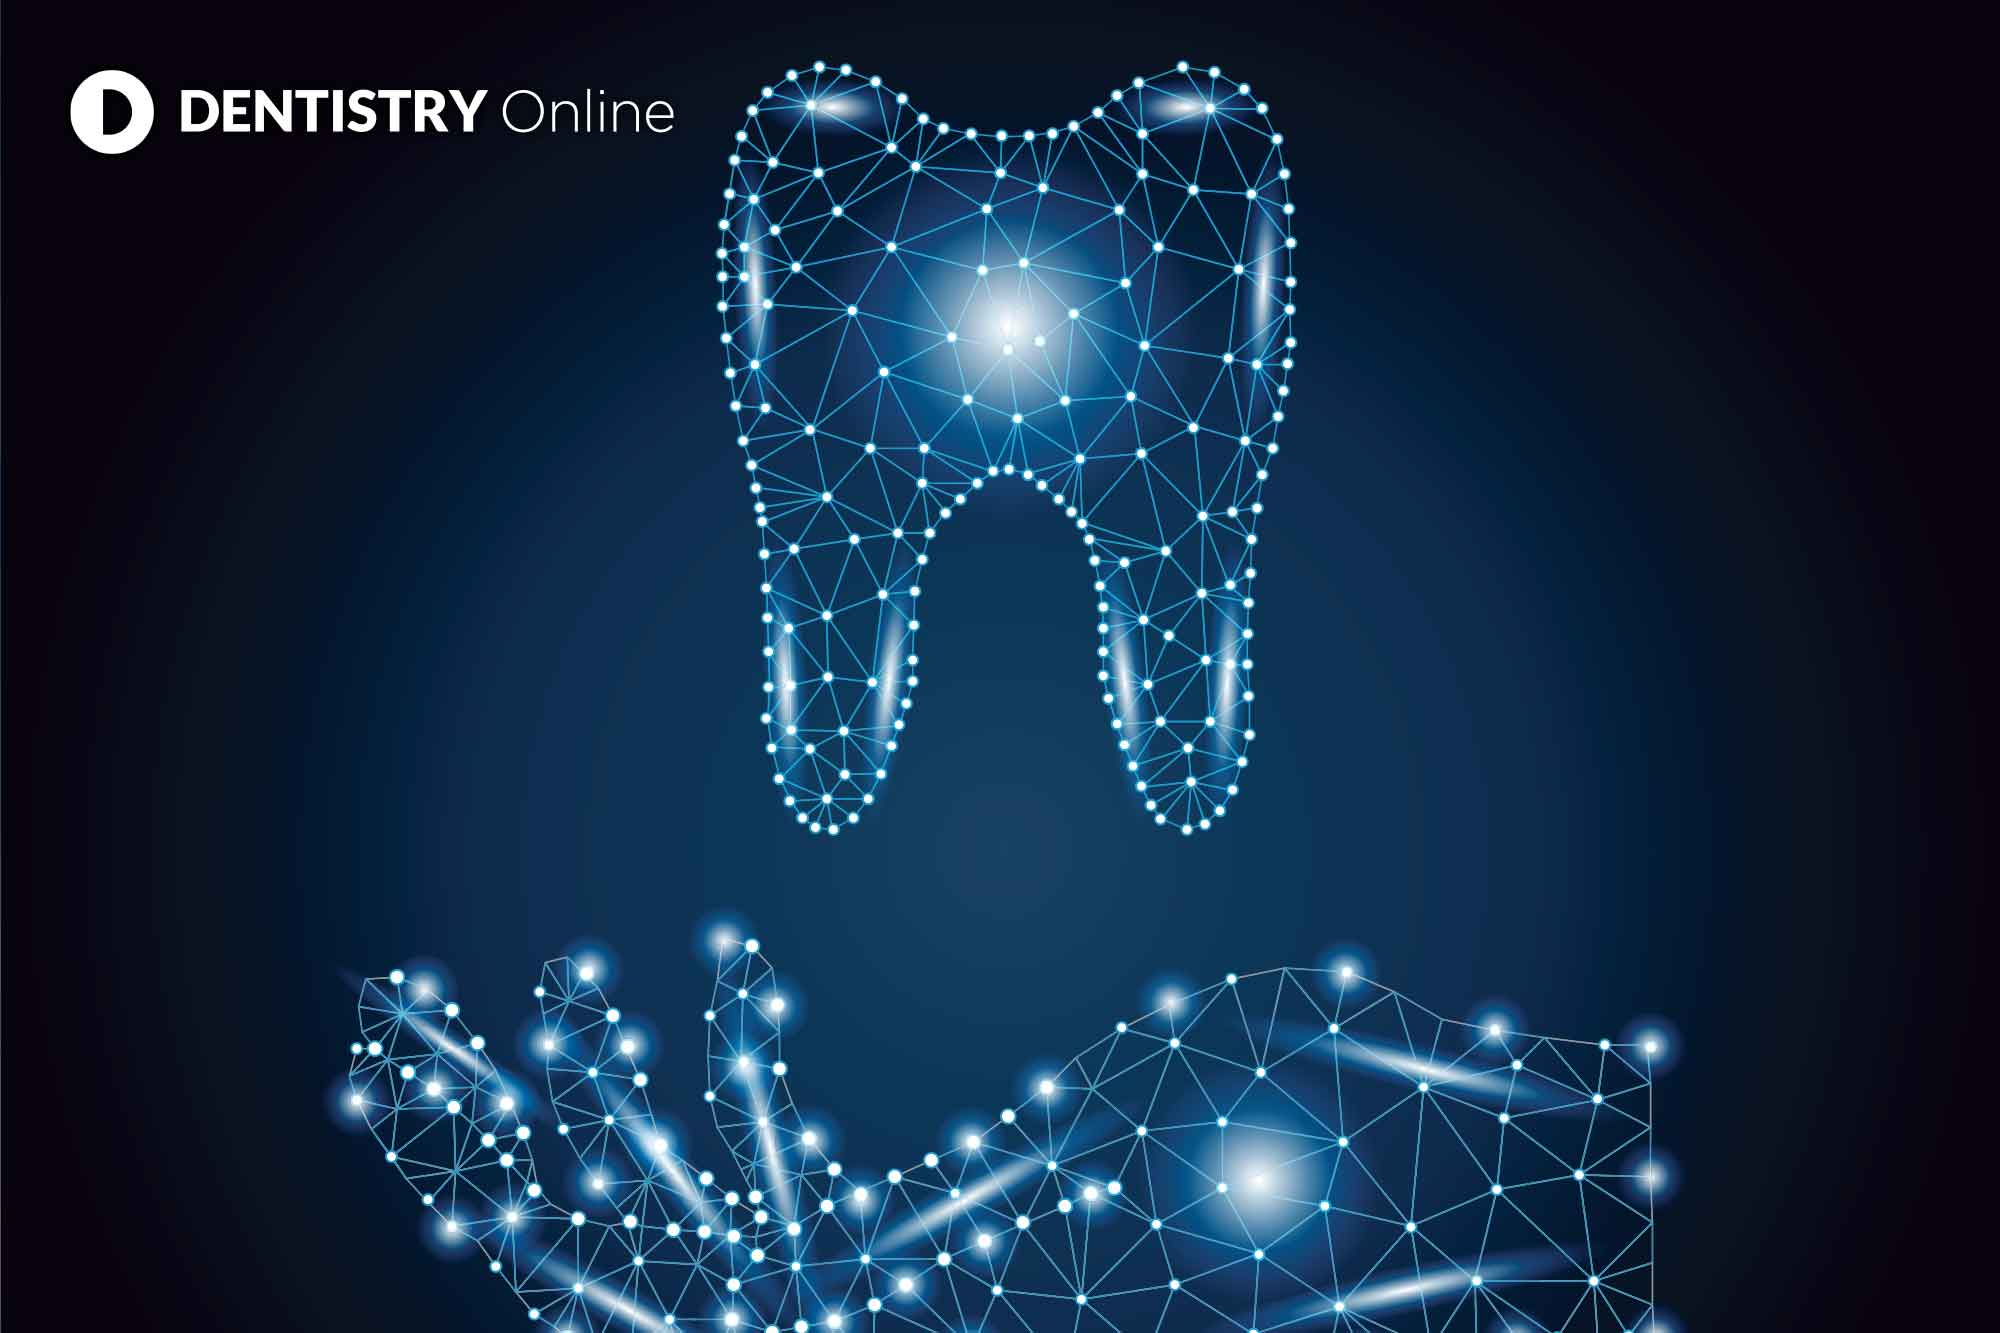 digital dentistry